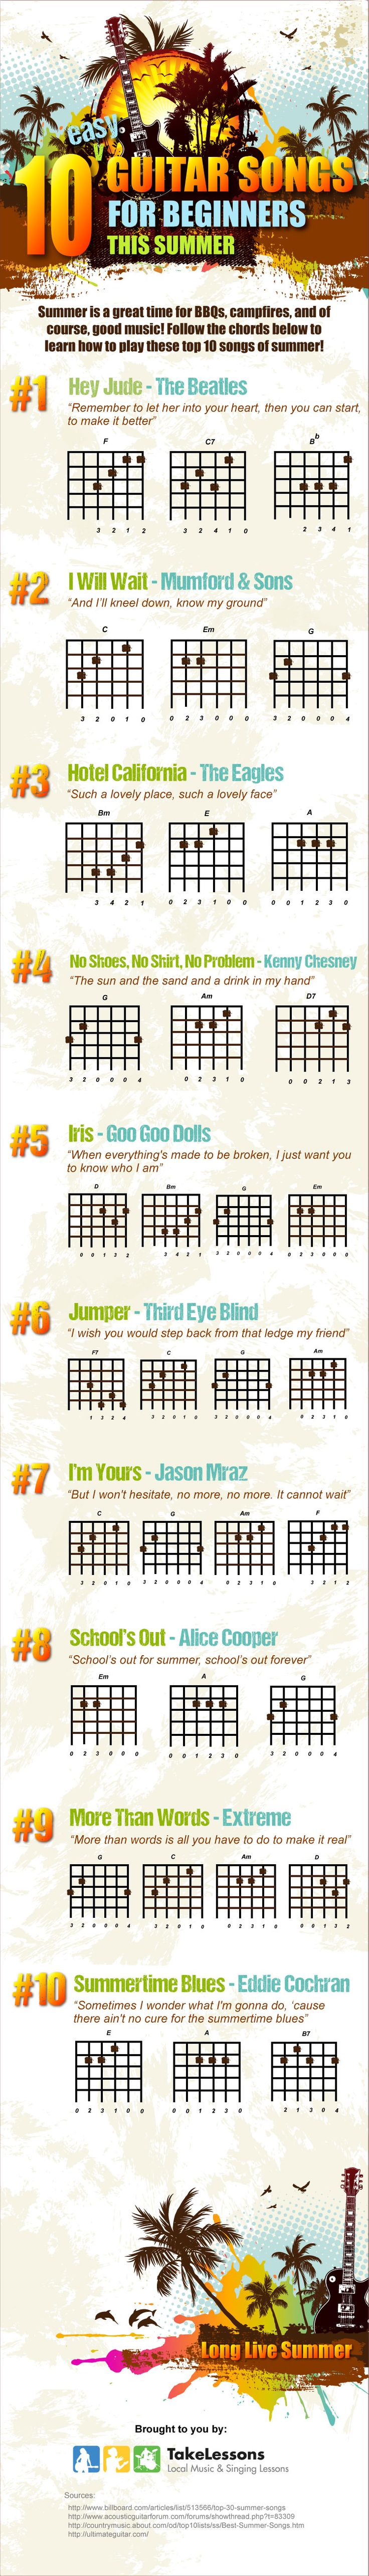 10 Guitar songs for beginners this summer - a great visual guide to 10 popular songs.